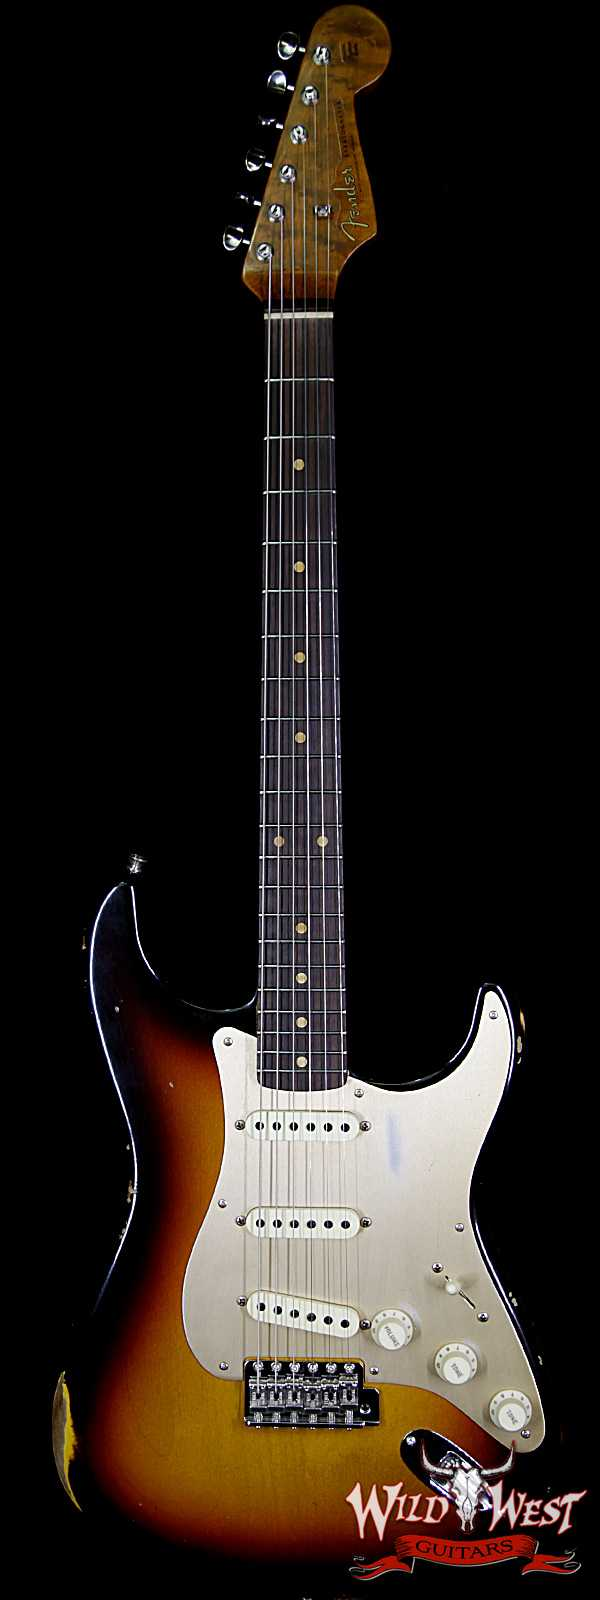 Fender Custom Shop 1960 Stratocaster Relic Roasted Birdseye Neck Rosewood Fingerboard Faded 3 Tone Sunburst